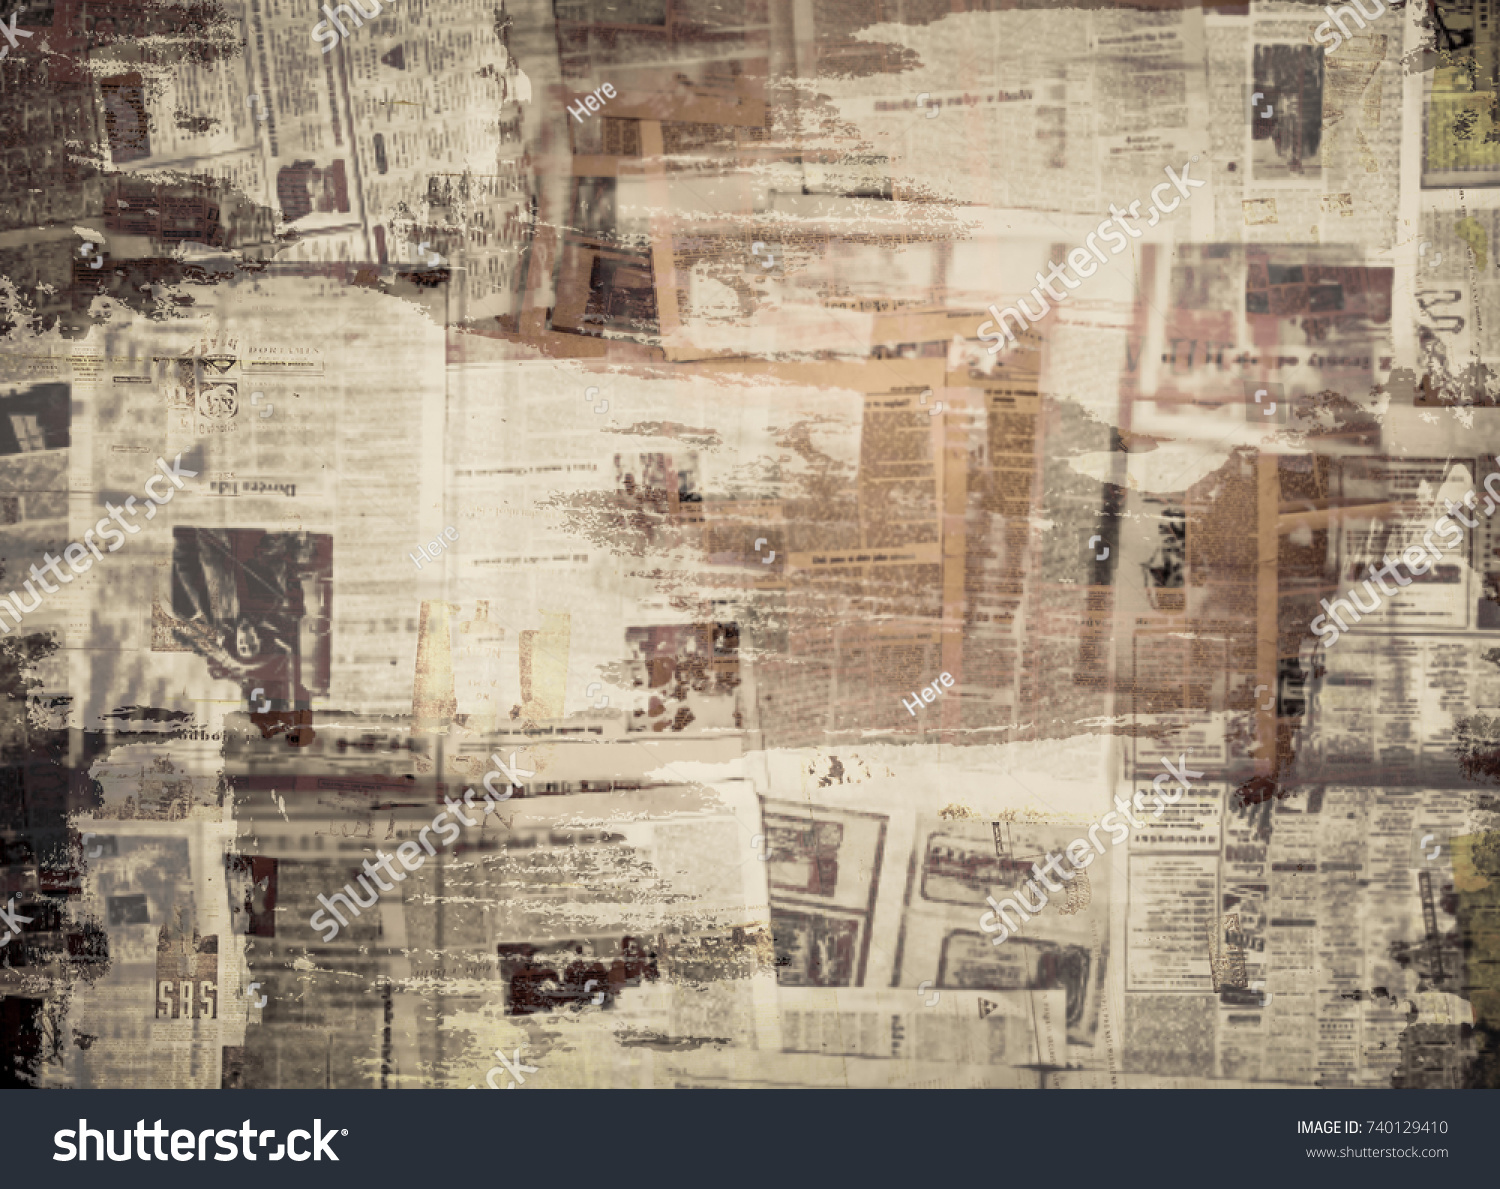 scratched paper texture old newspaper background stock photo (edit